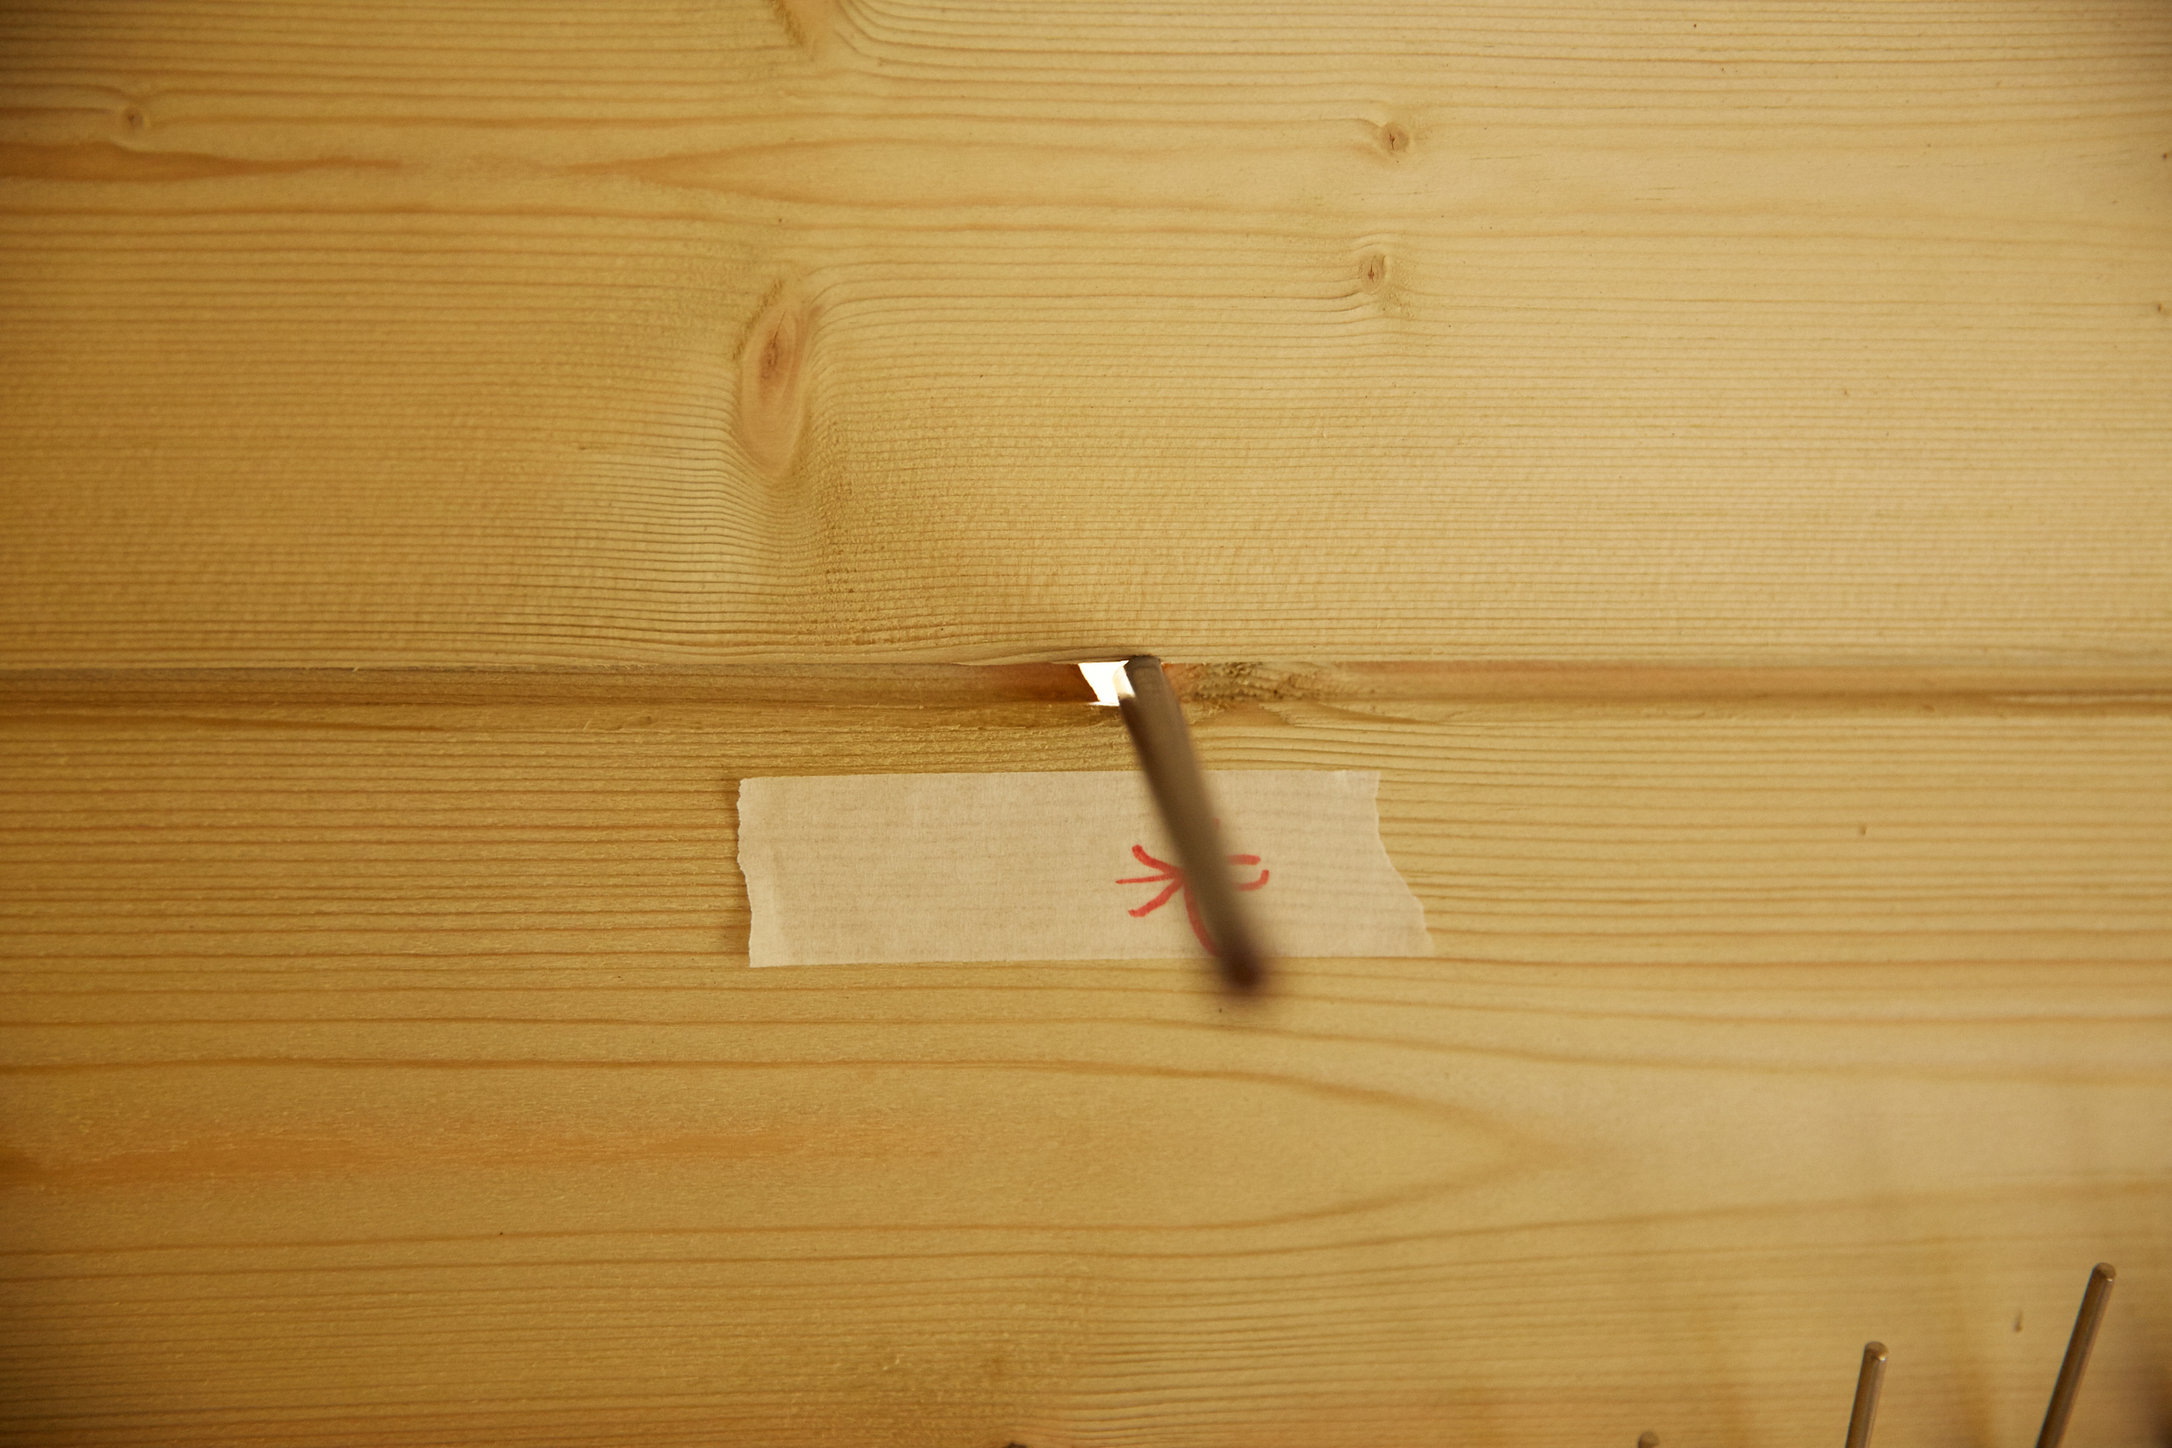 The largest of several holes in walls of shed with pencil inserted to show size.